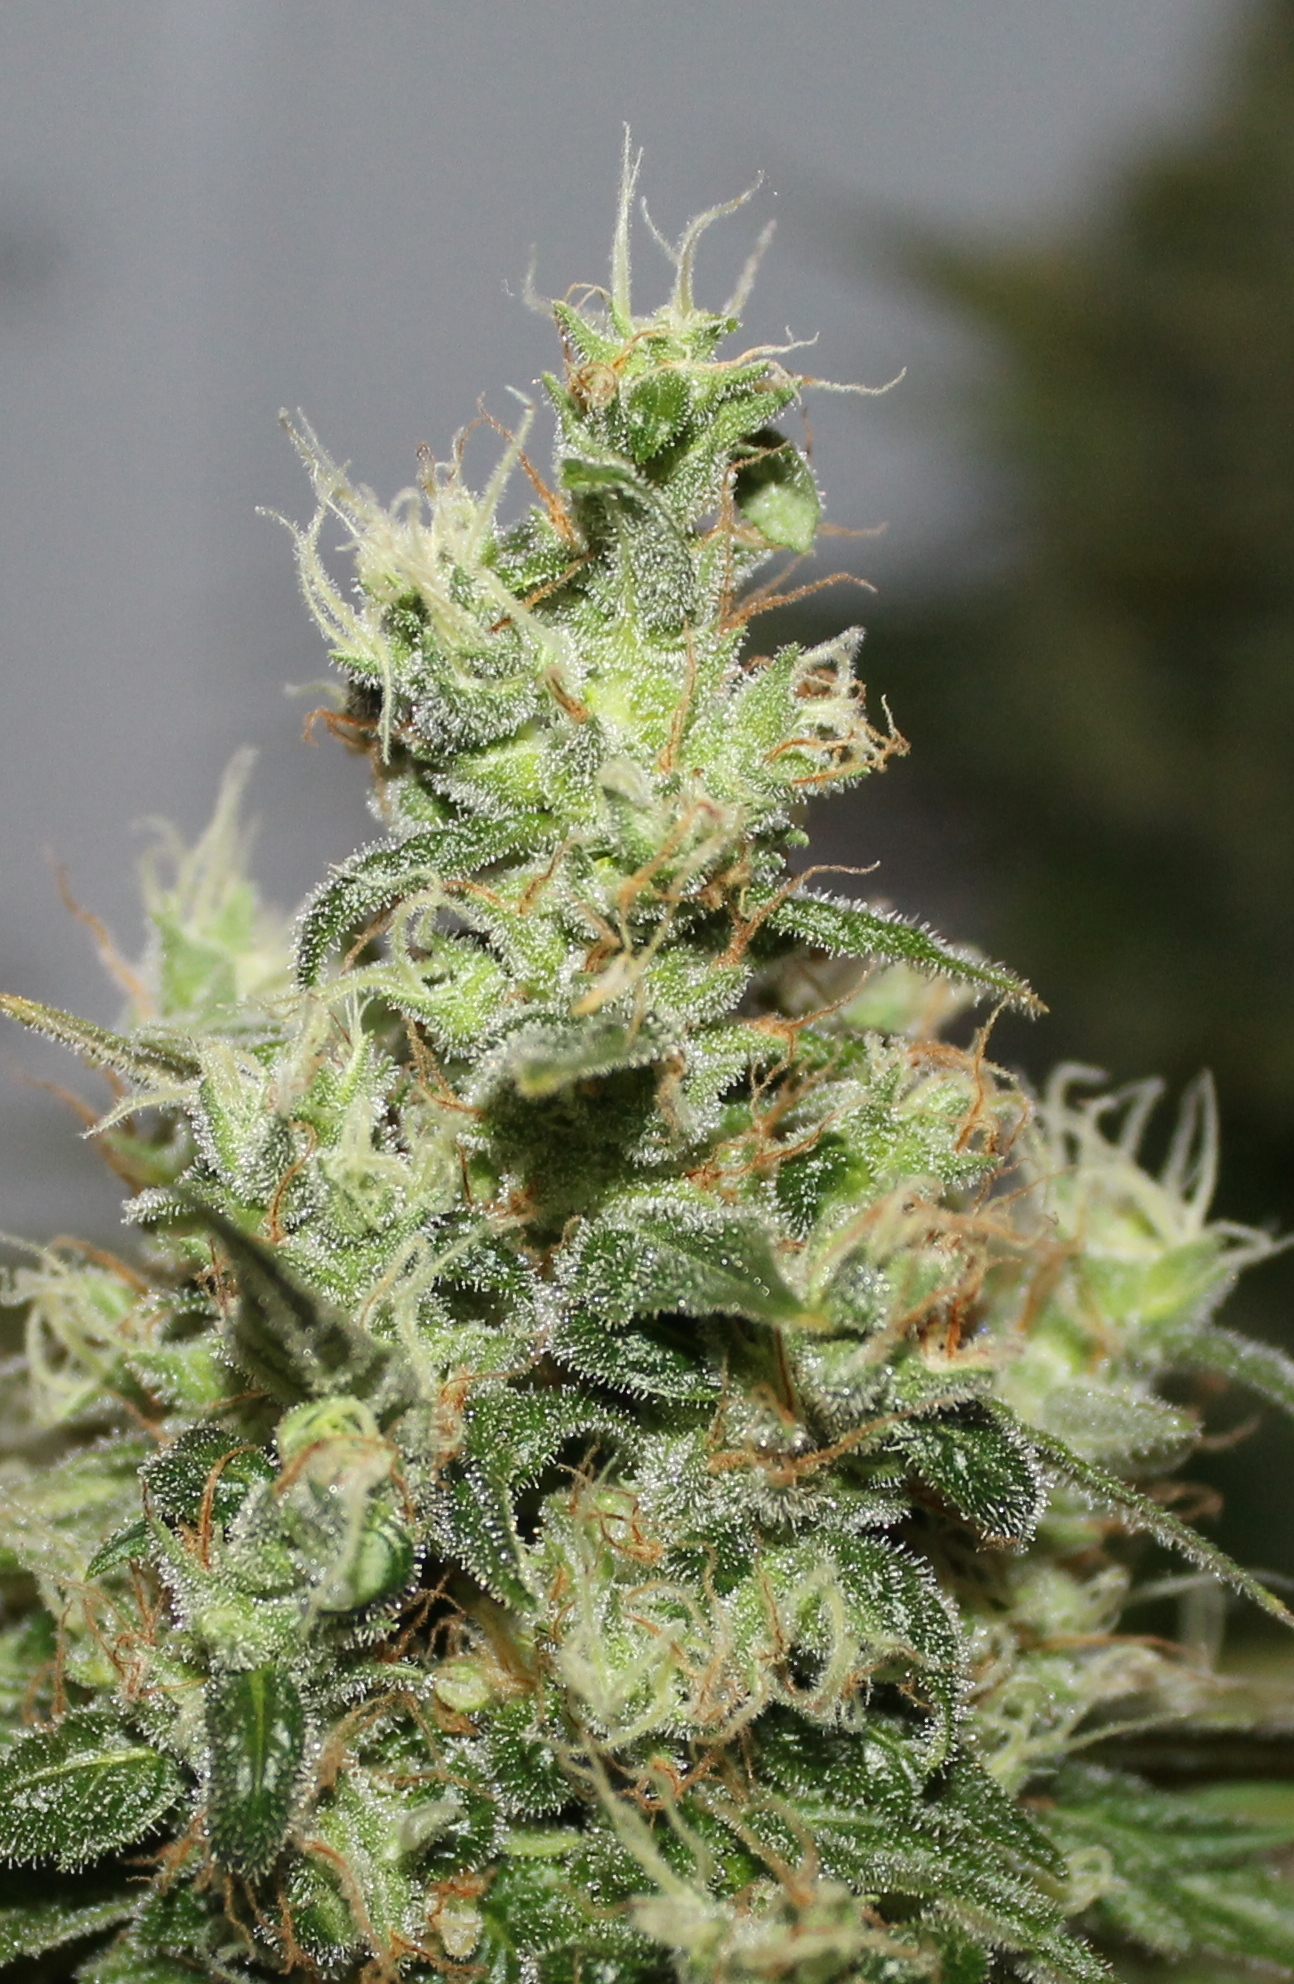 plenty of trichomes